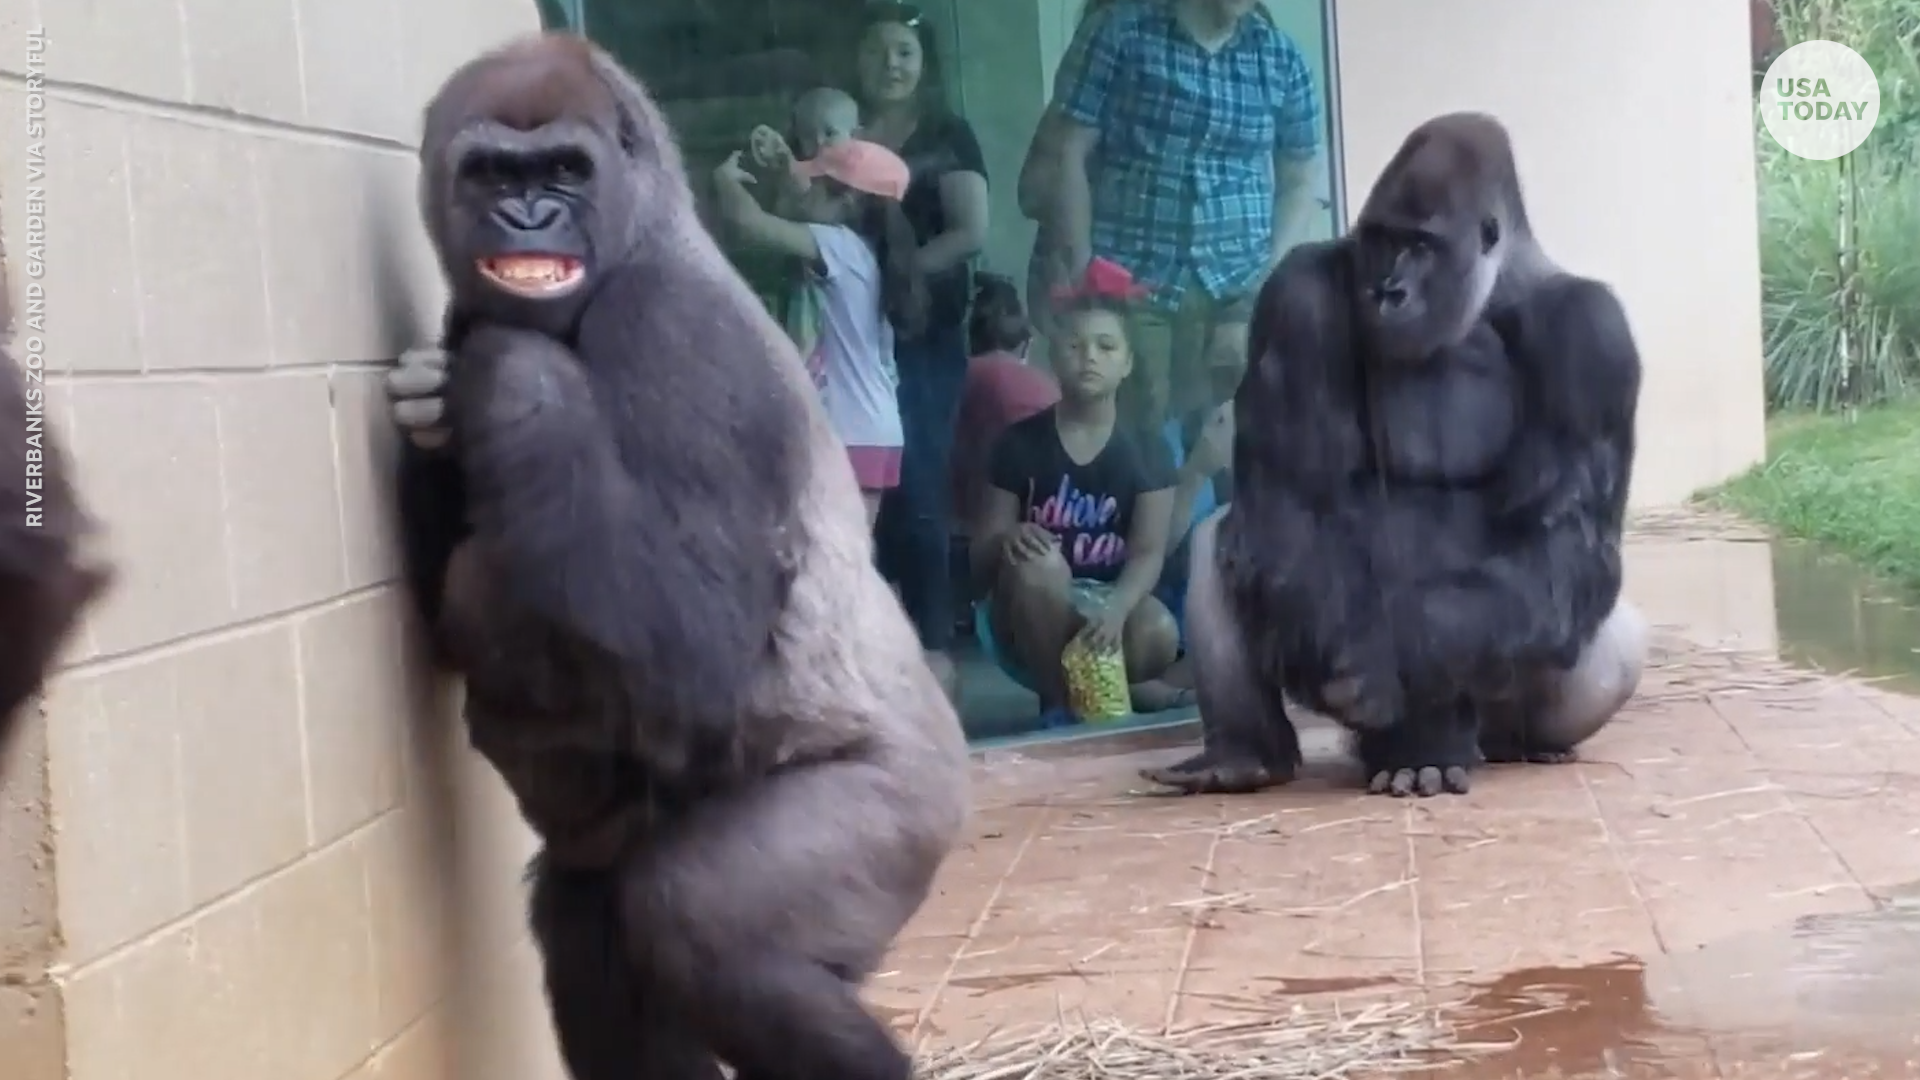 Gorillas hilariously cringe as they dodge the downpour